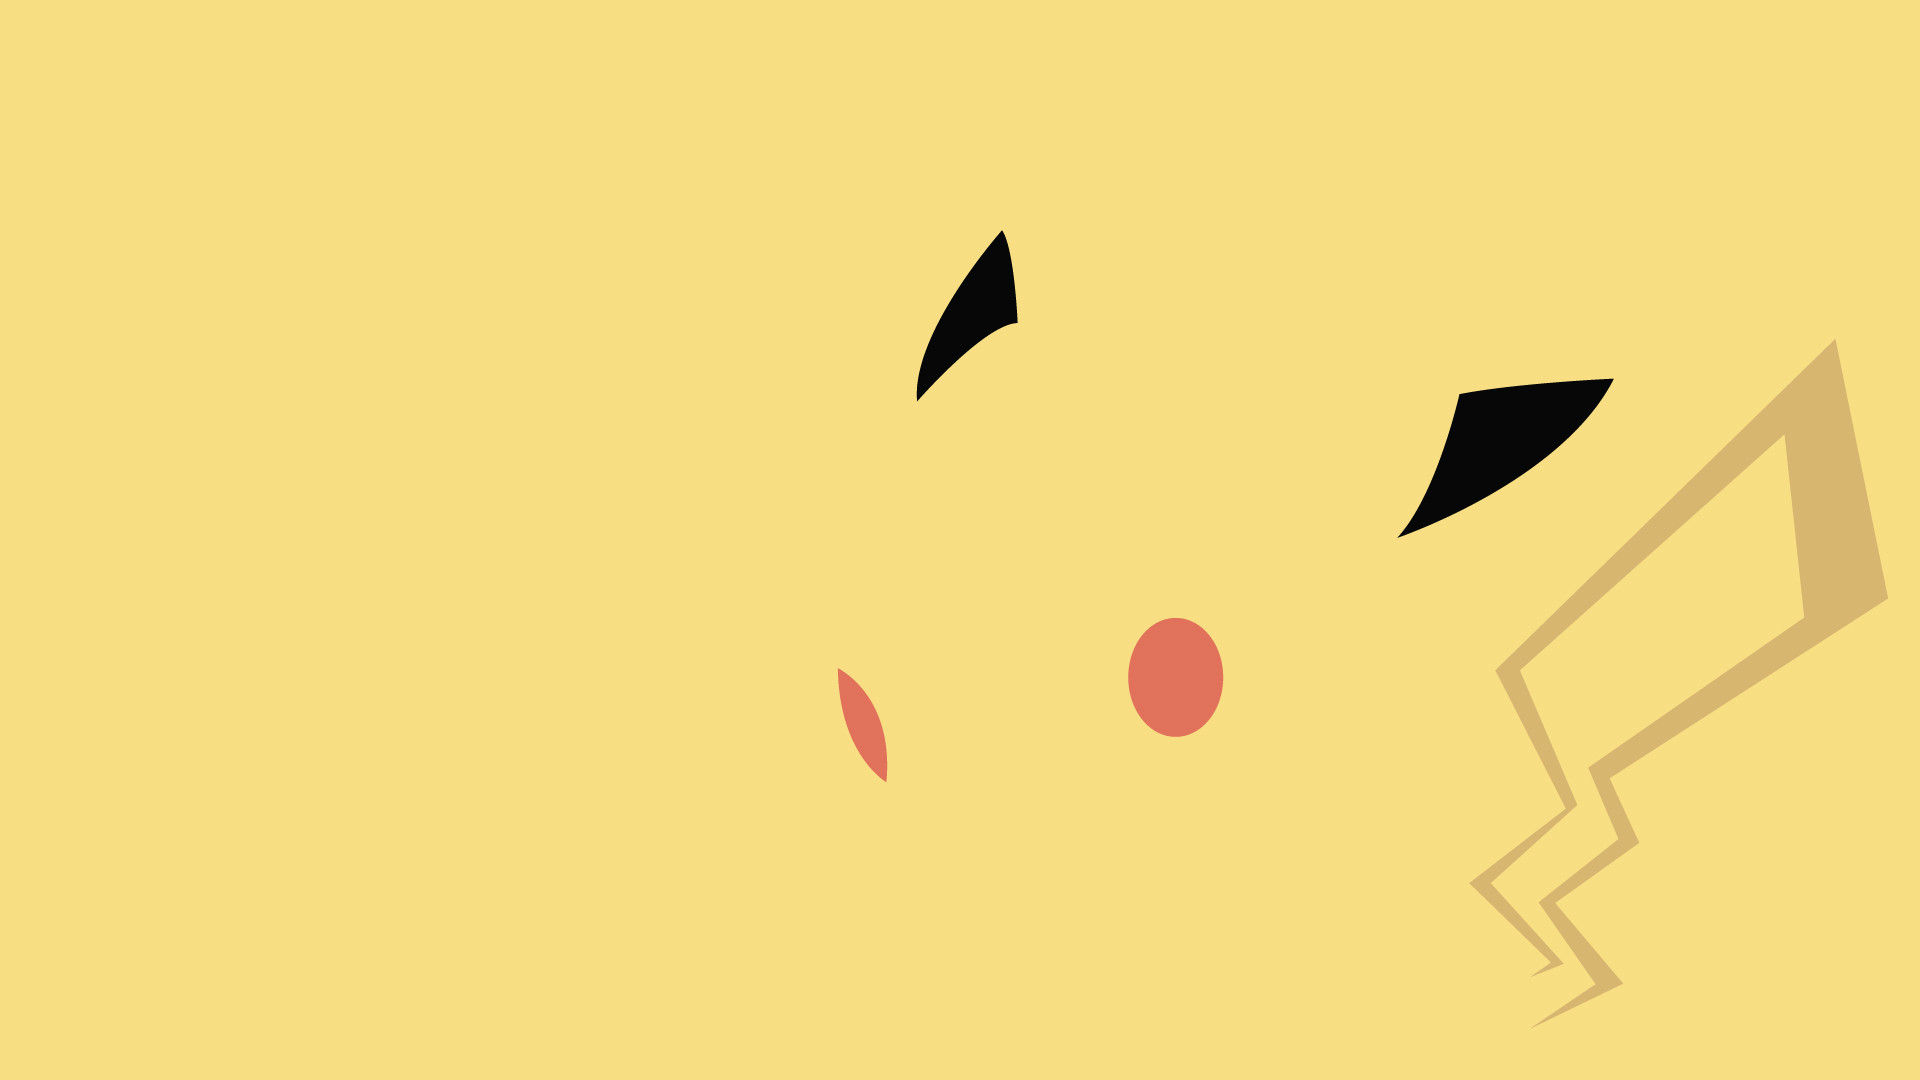 Awesome minimalist Pikachu wallpaper. There is a whole collection of them  at the linked site